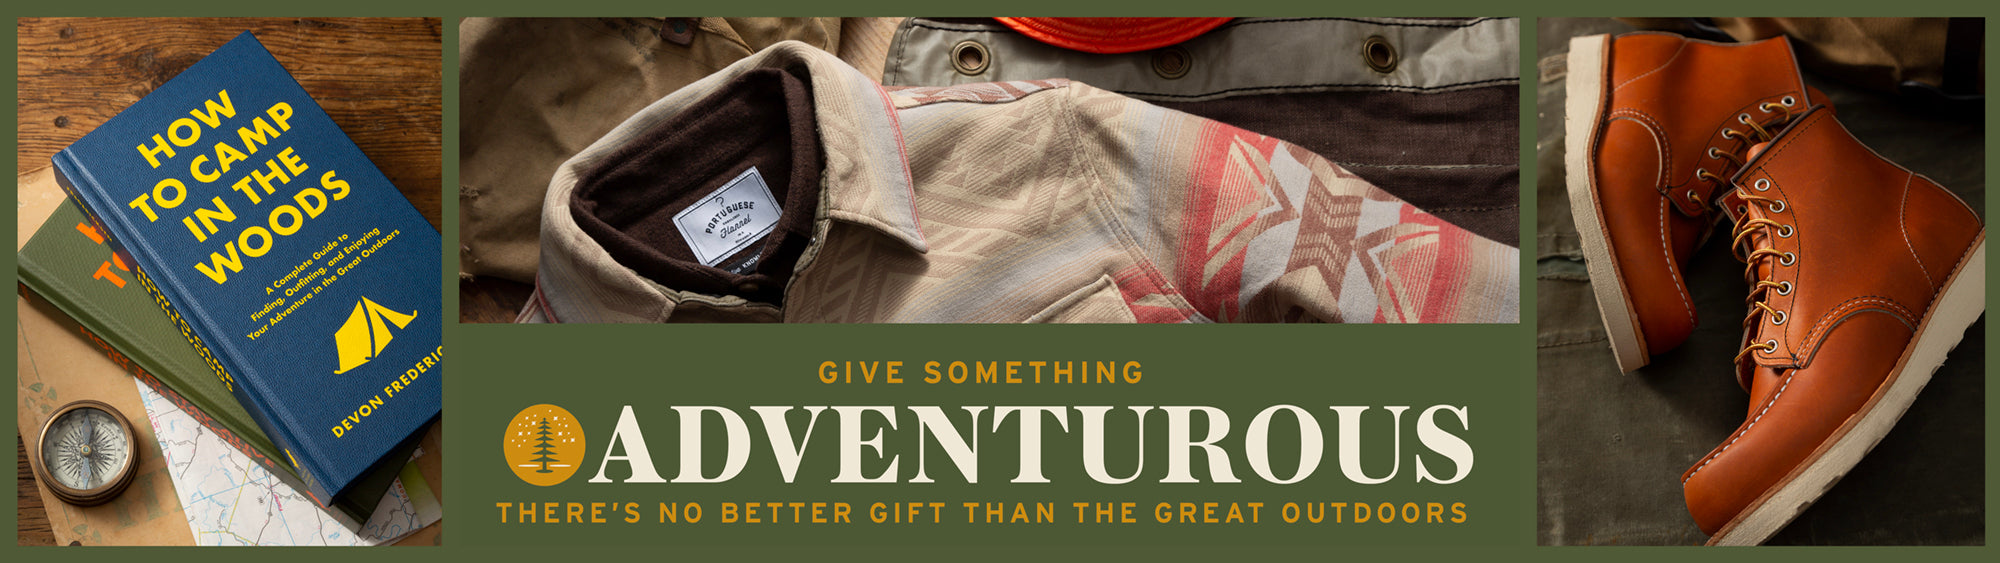 Gift Guide - Give Something Adventurous | STAG